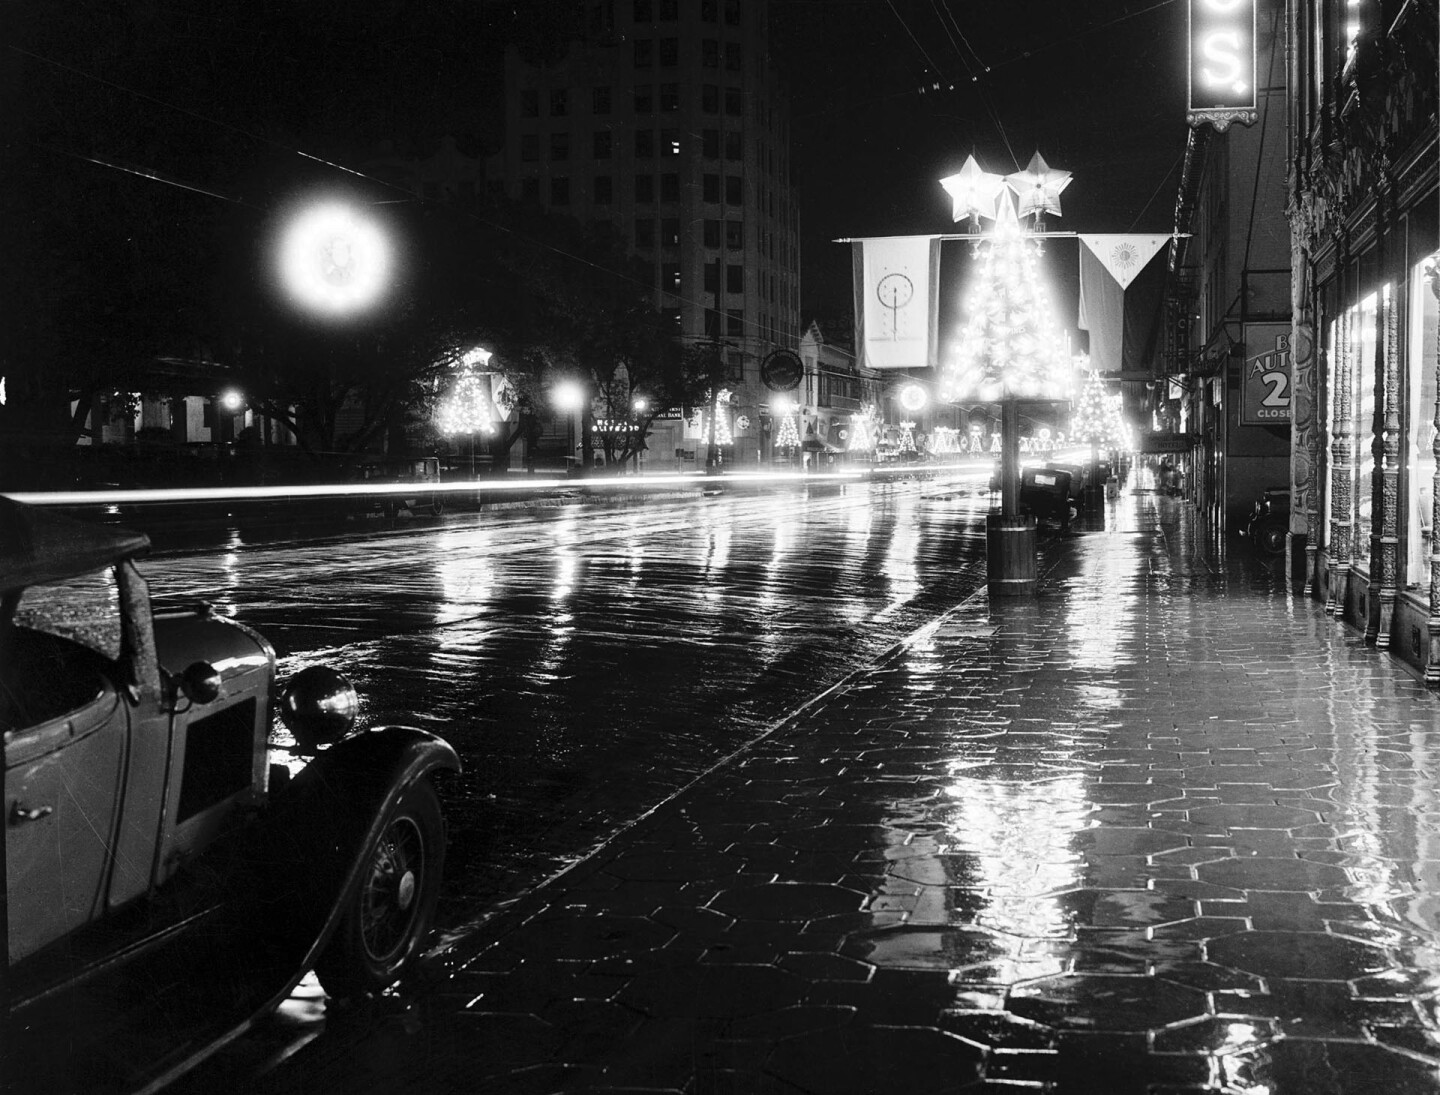 Circa 1935 view of a wet Hollywood Boulevard decorated for the holidays. Courtesy of the California Historical Society Collection, USC Libraries.